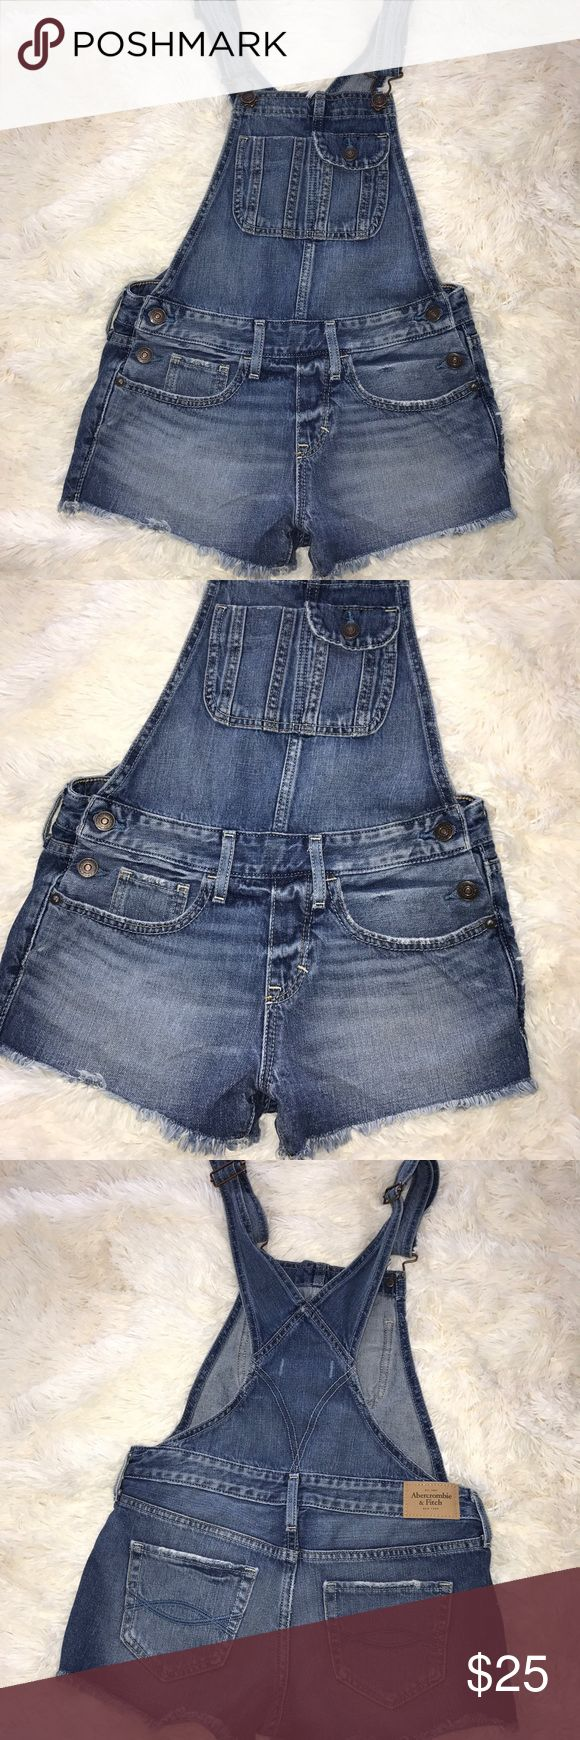 Abercrombie & fitch Denim Overalls No stains or rips Abercrombie & Fitch Shorts